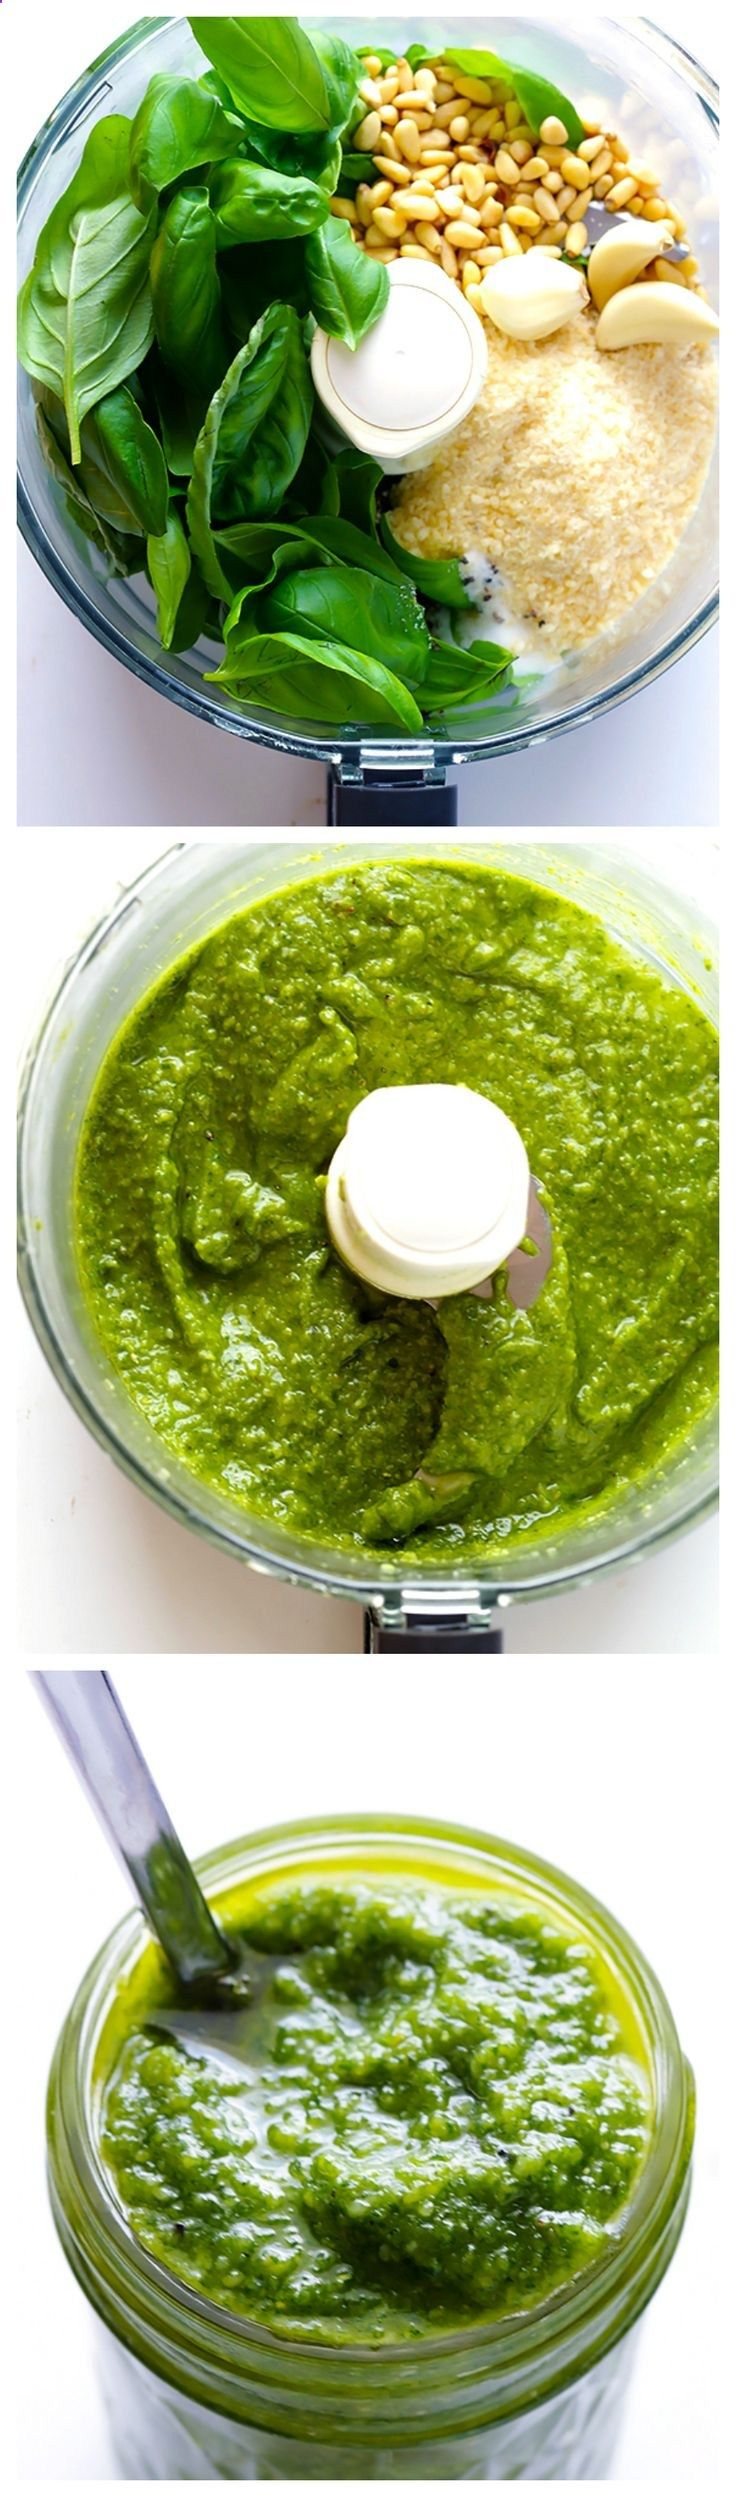 Homemade Pesto -- a simple step-by-step guide to making classic basil pesto | http://gimmesomeoven.com #tutorial #italian